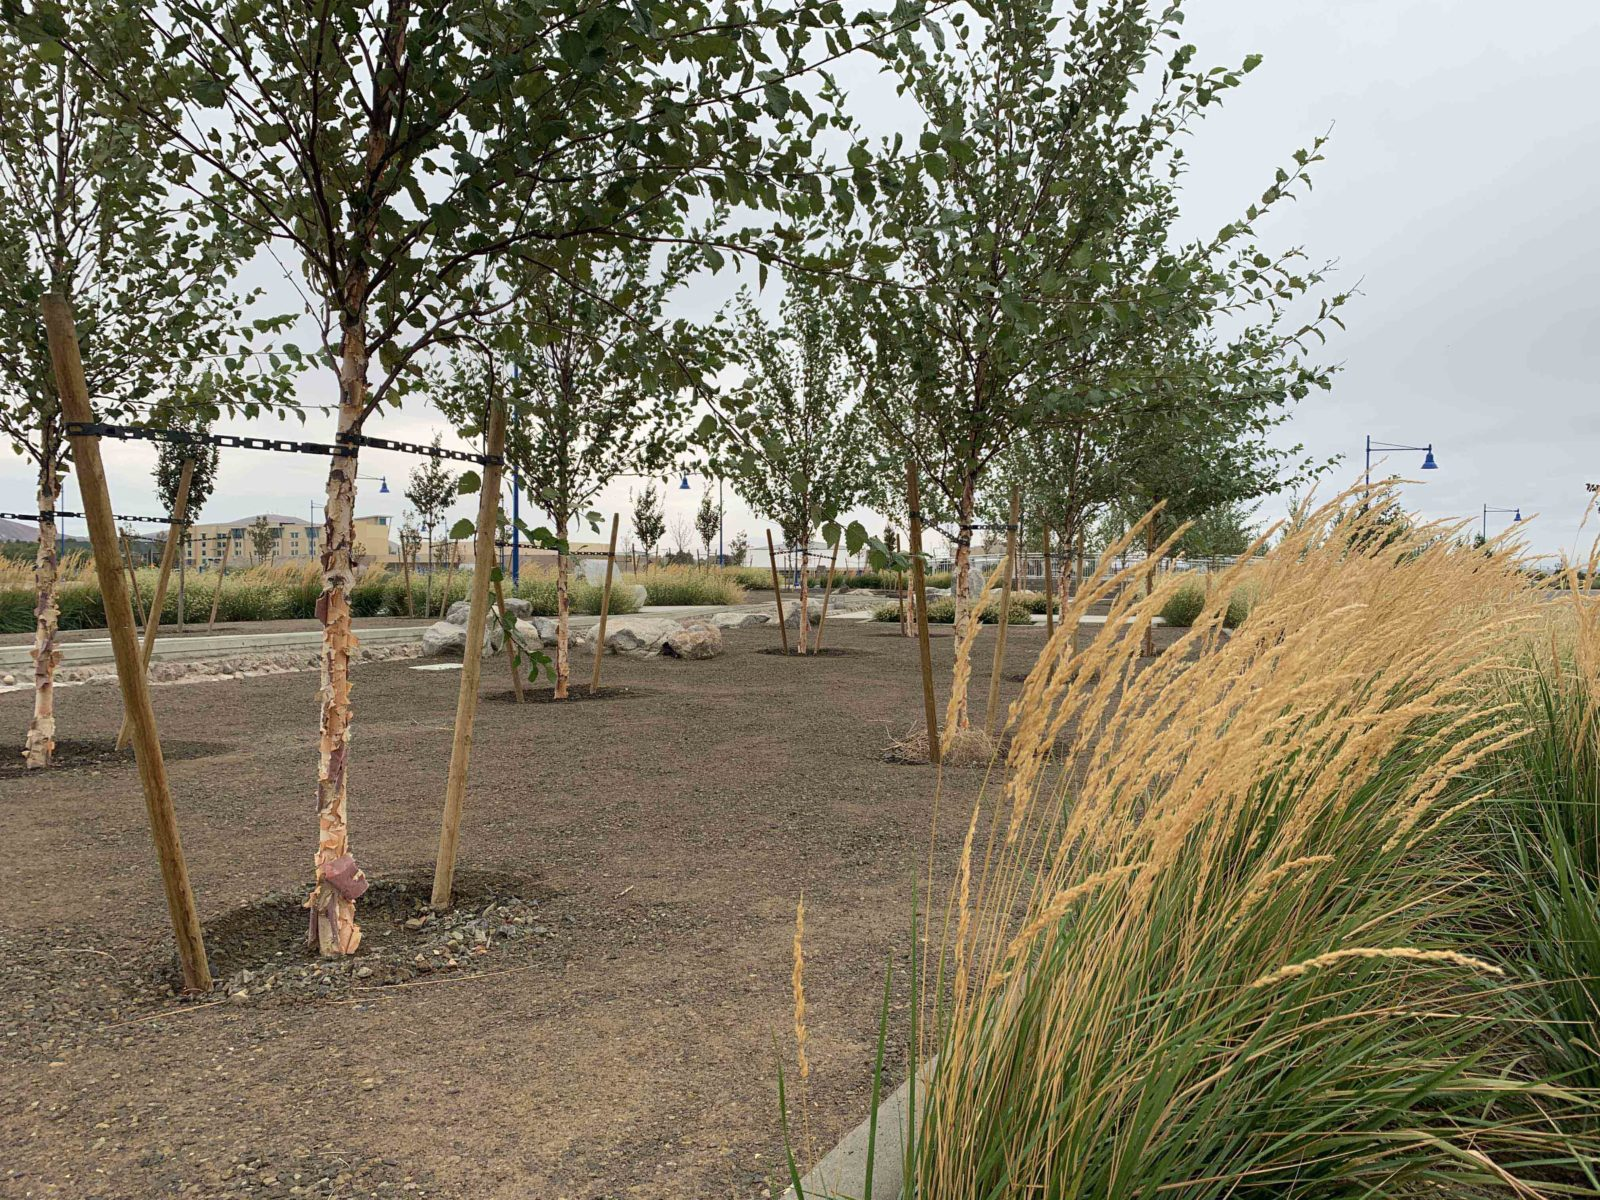 Trees and other landscaping planted at Vista Field during phase one redevelopment.